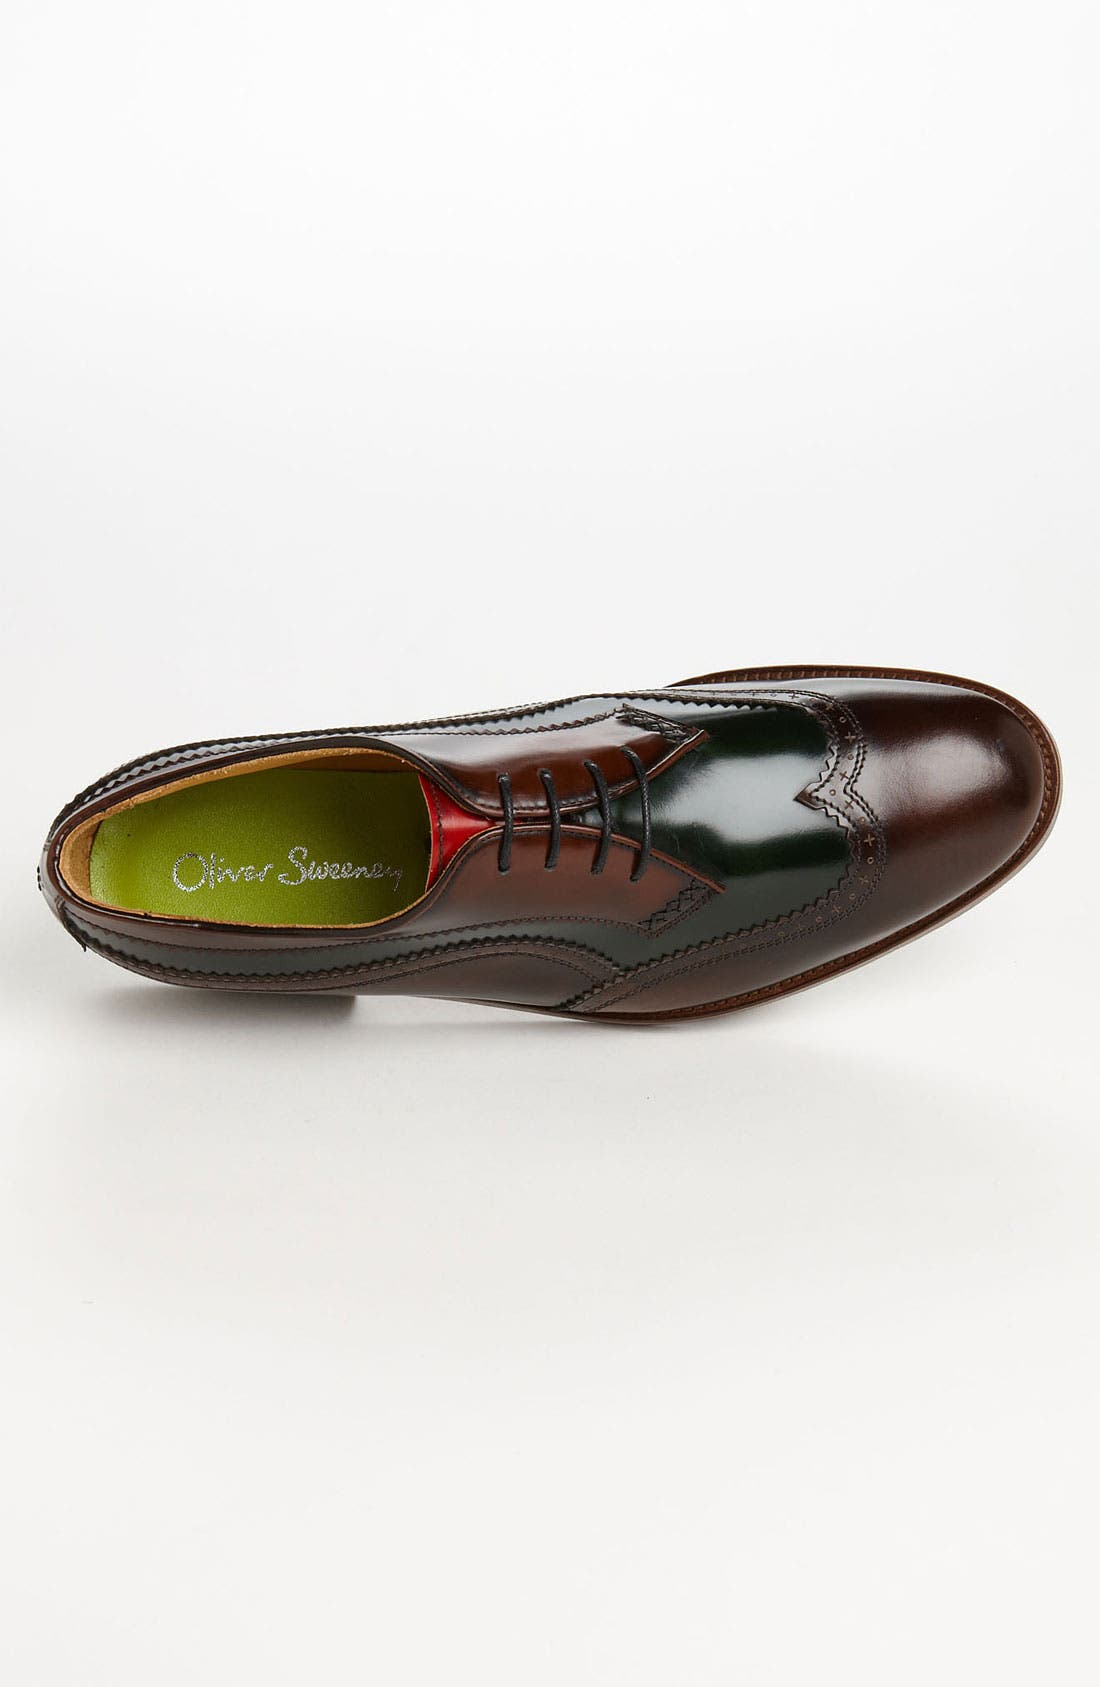 Alternate Image 3  - Oliver Sweeney 'Salento' Spectator Shoe